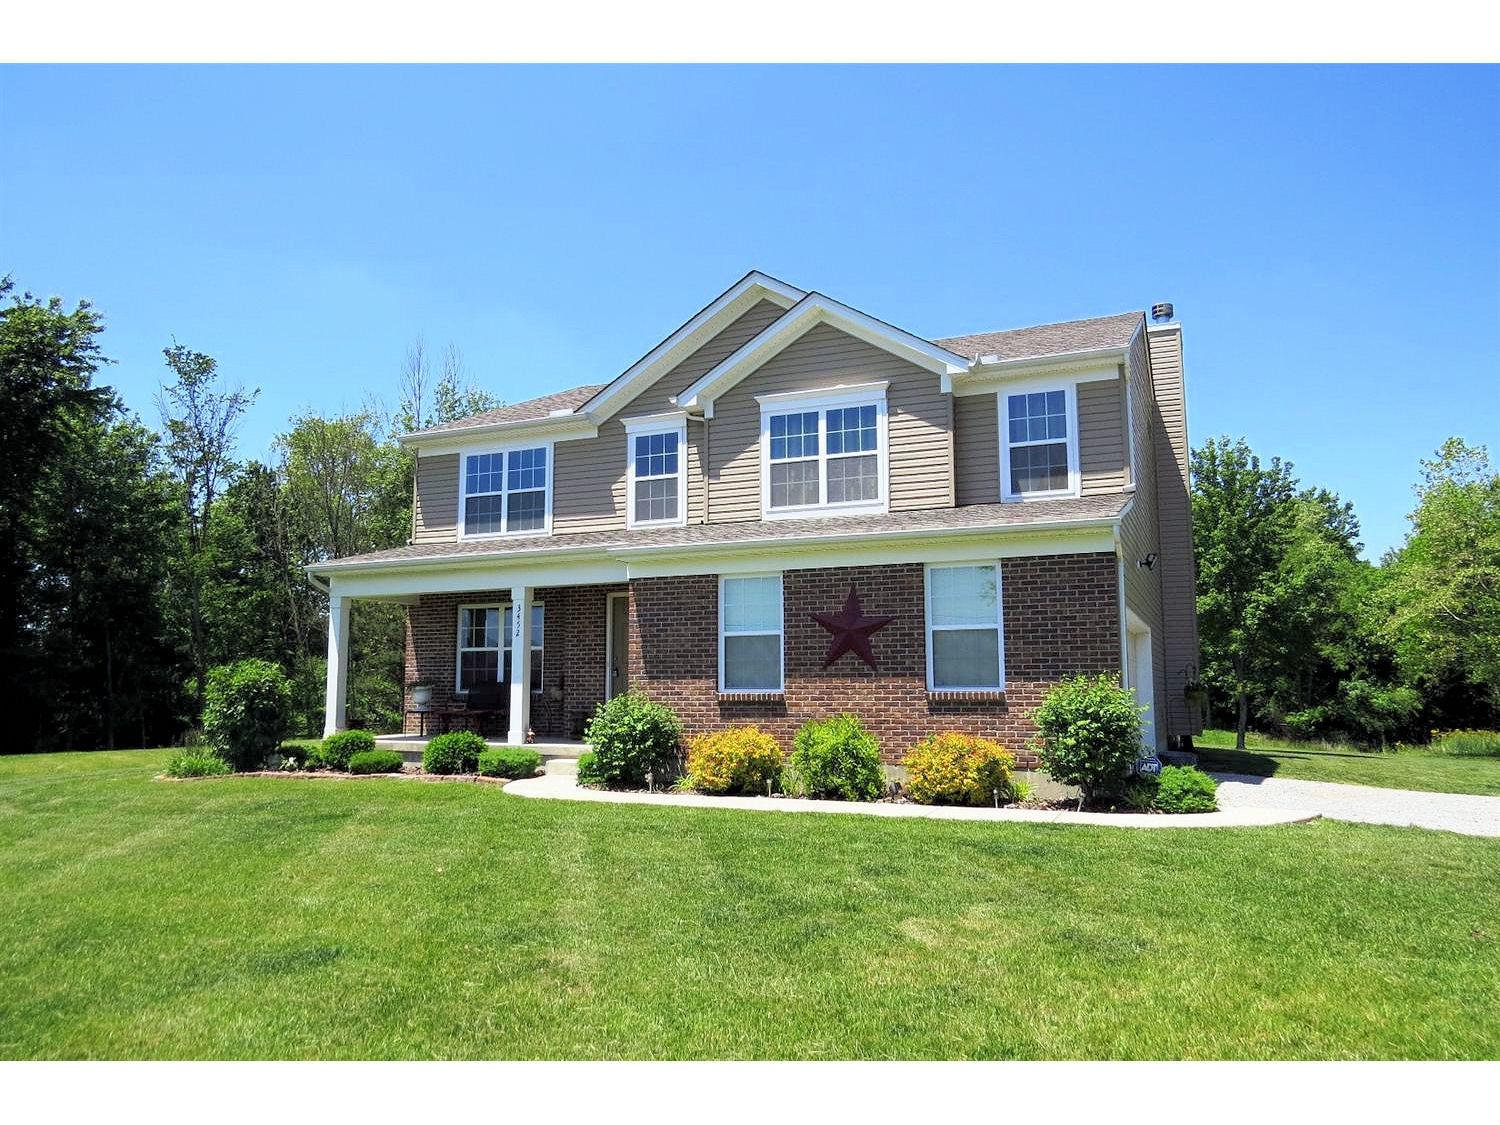 3452 Number Nine Rd Wayne Twp. (Clermont Co.), OH